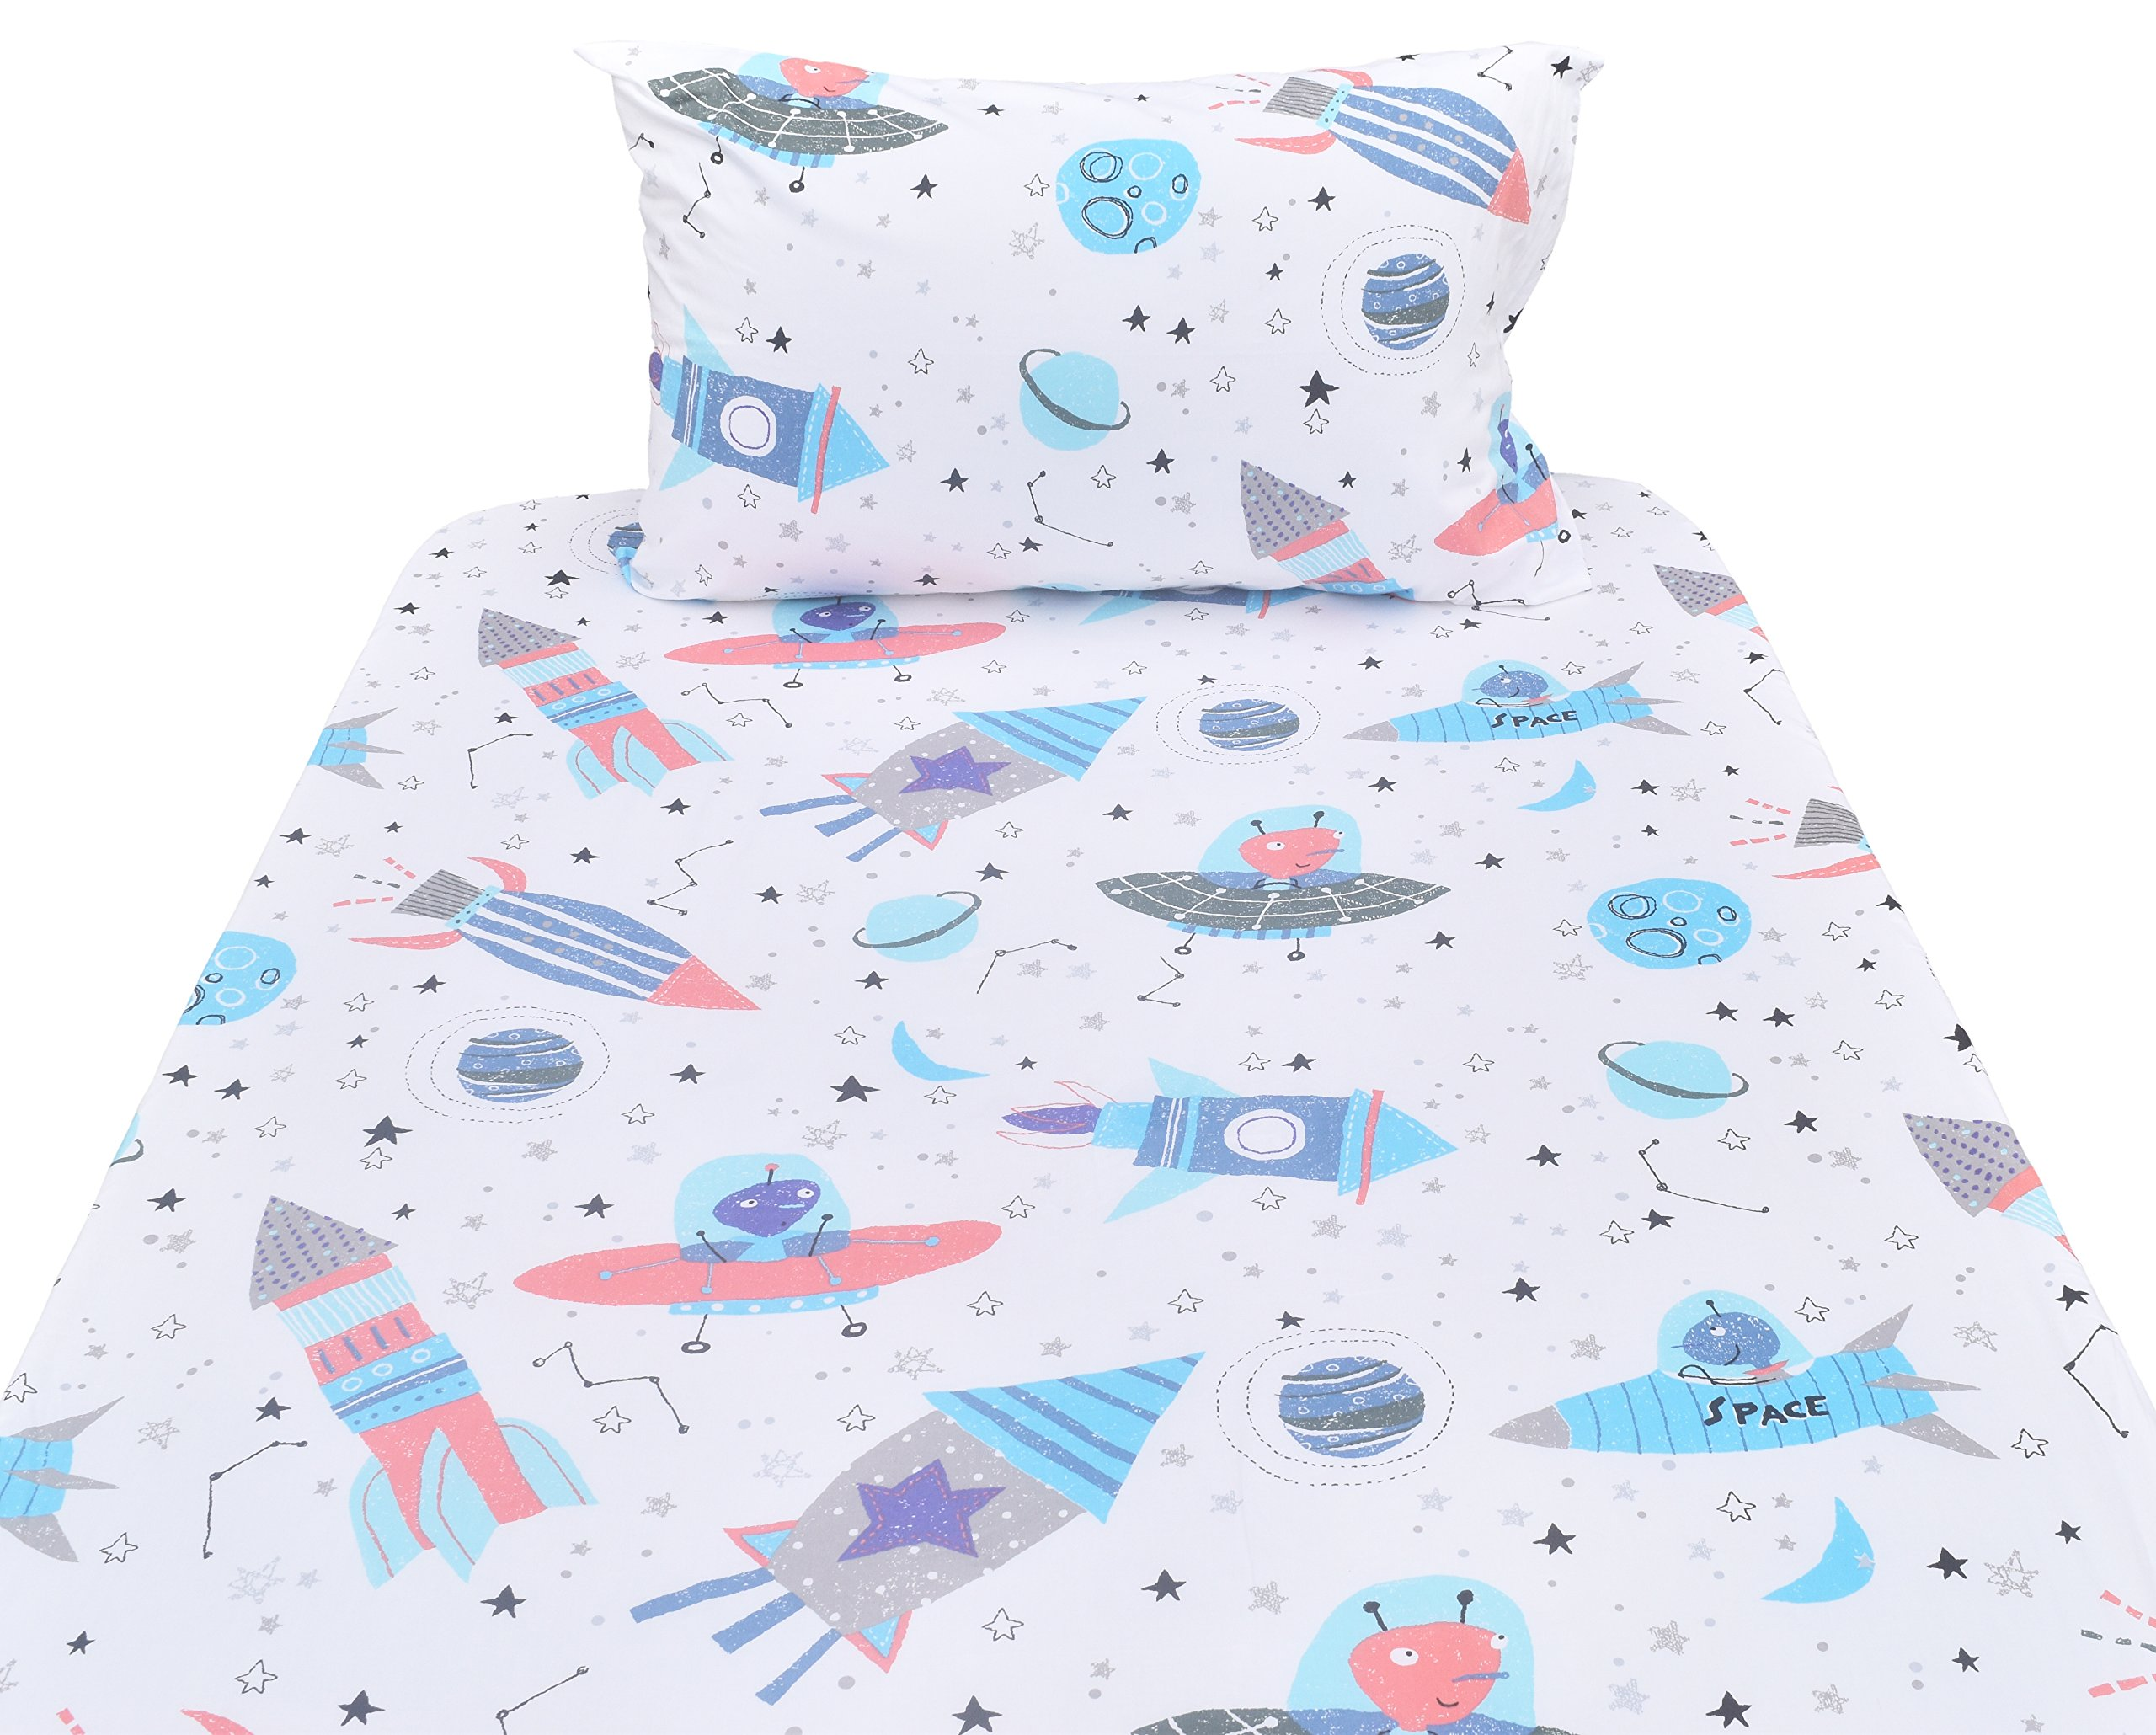 J-pinno Planet Spaceship Rocket Twin Sheet Set for Kids Boy Children,100% Cotton, Flat Sheet + Fitted Sheet + Pillowcase Bedding Set